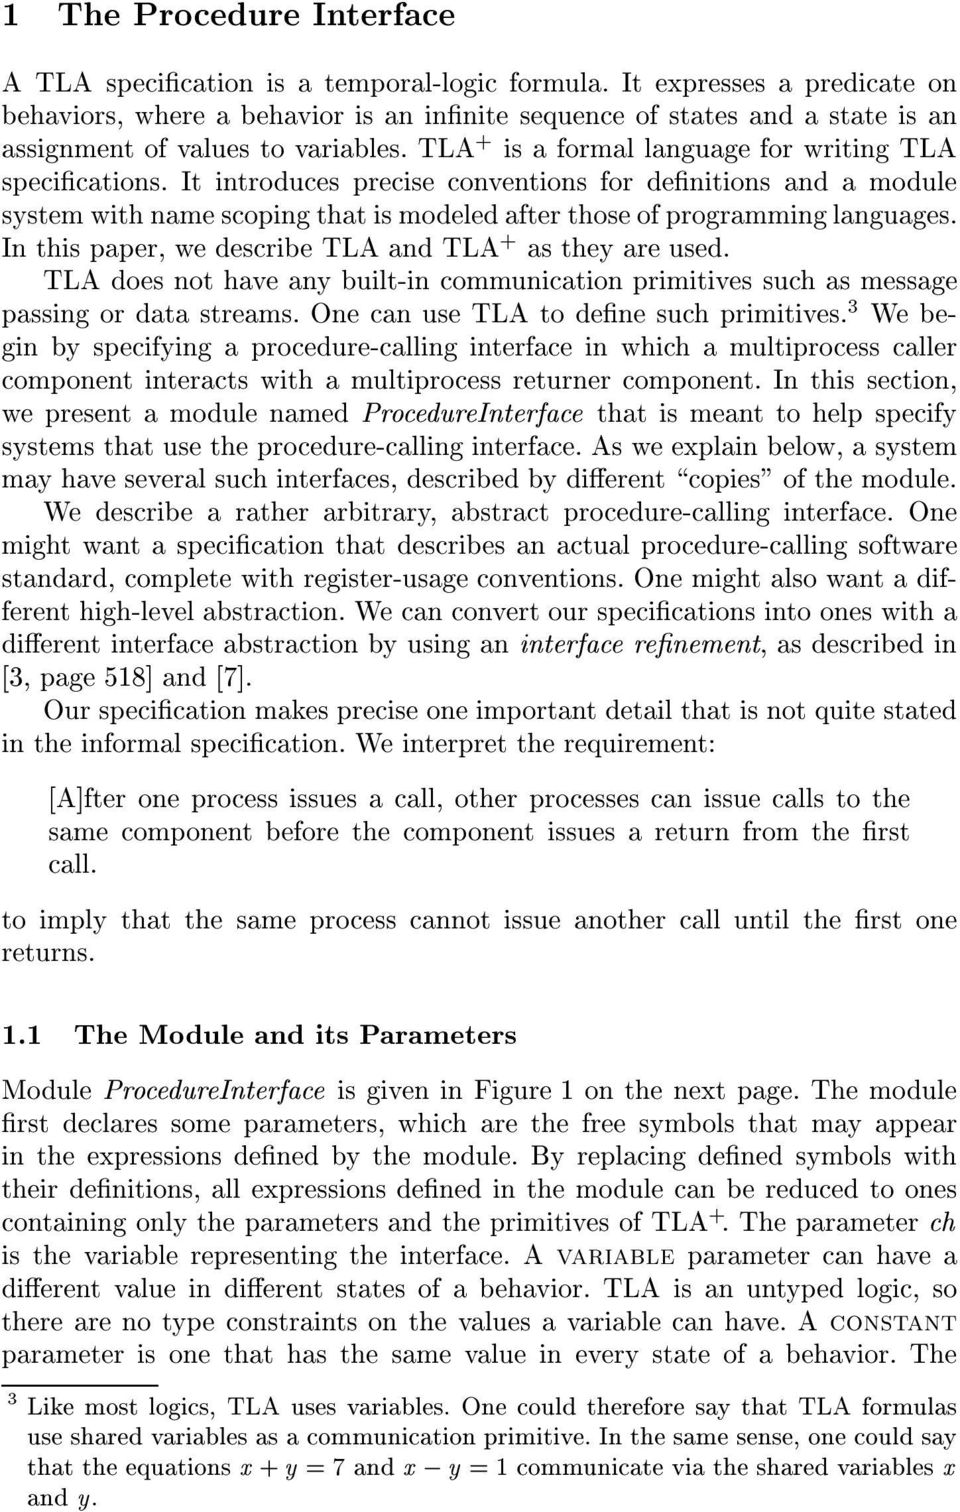 It introduces precise conventions for denitions and a module system with name scoping that is modeled after those of programming languages. In this paper, we describe TLA and TLA + as they are used.